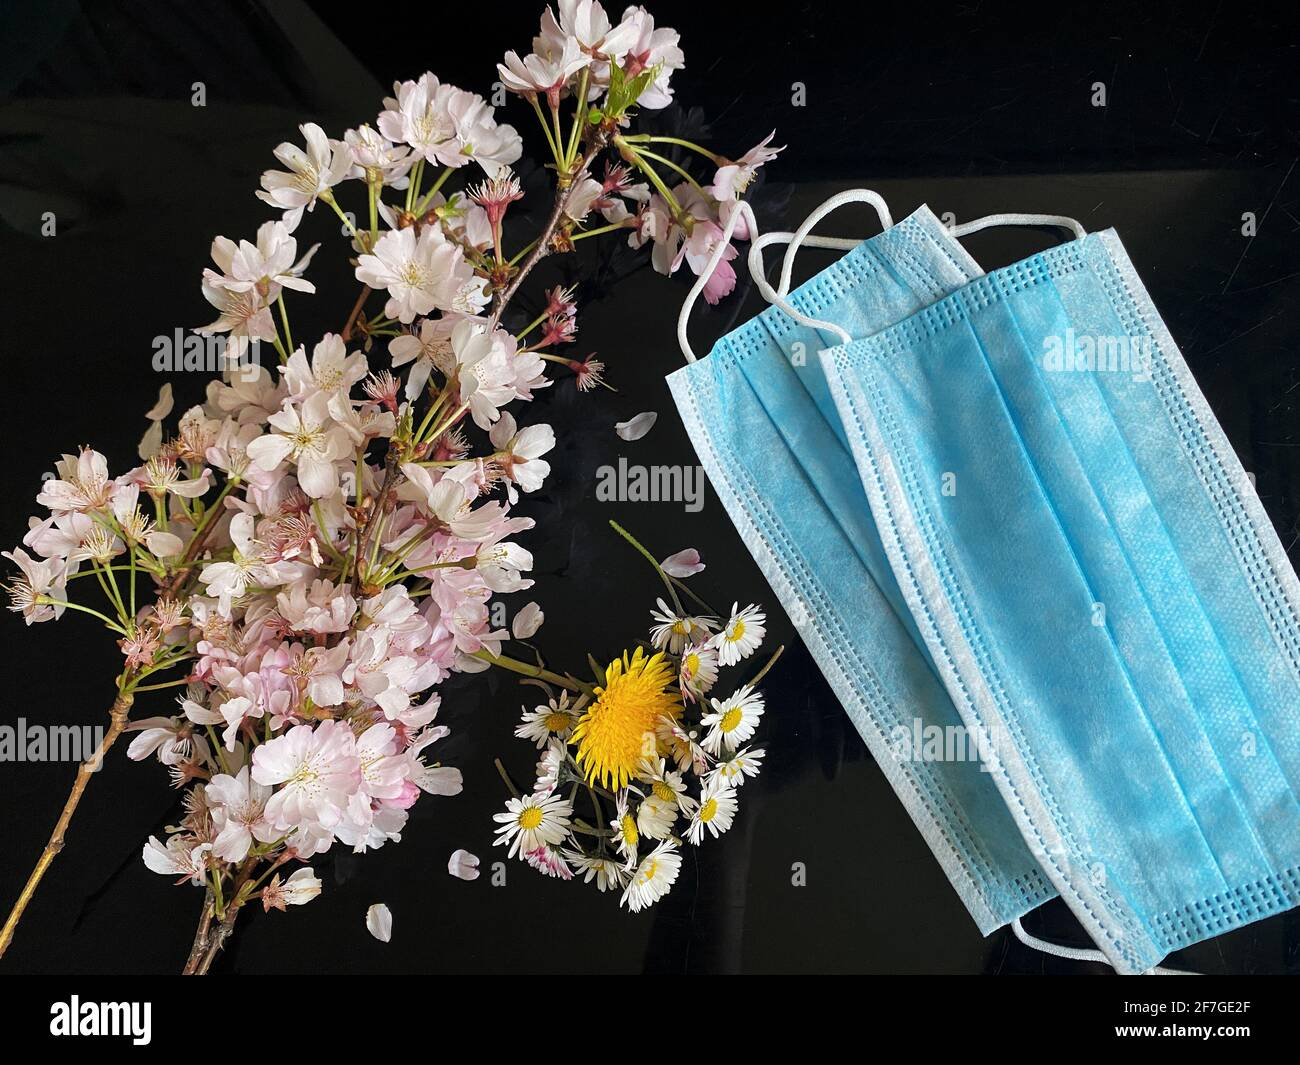 Flowers on the side of surgical masks - Covid19 coronavirus concept - Condolence, Grievance, Hope and Solidarity to all the lives lost. Stock Photo